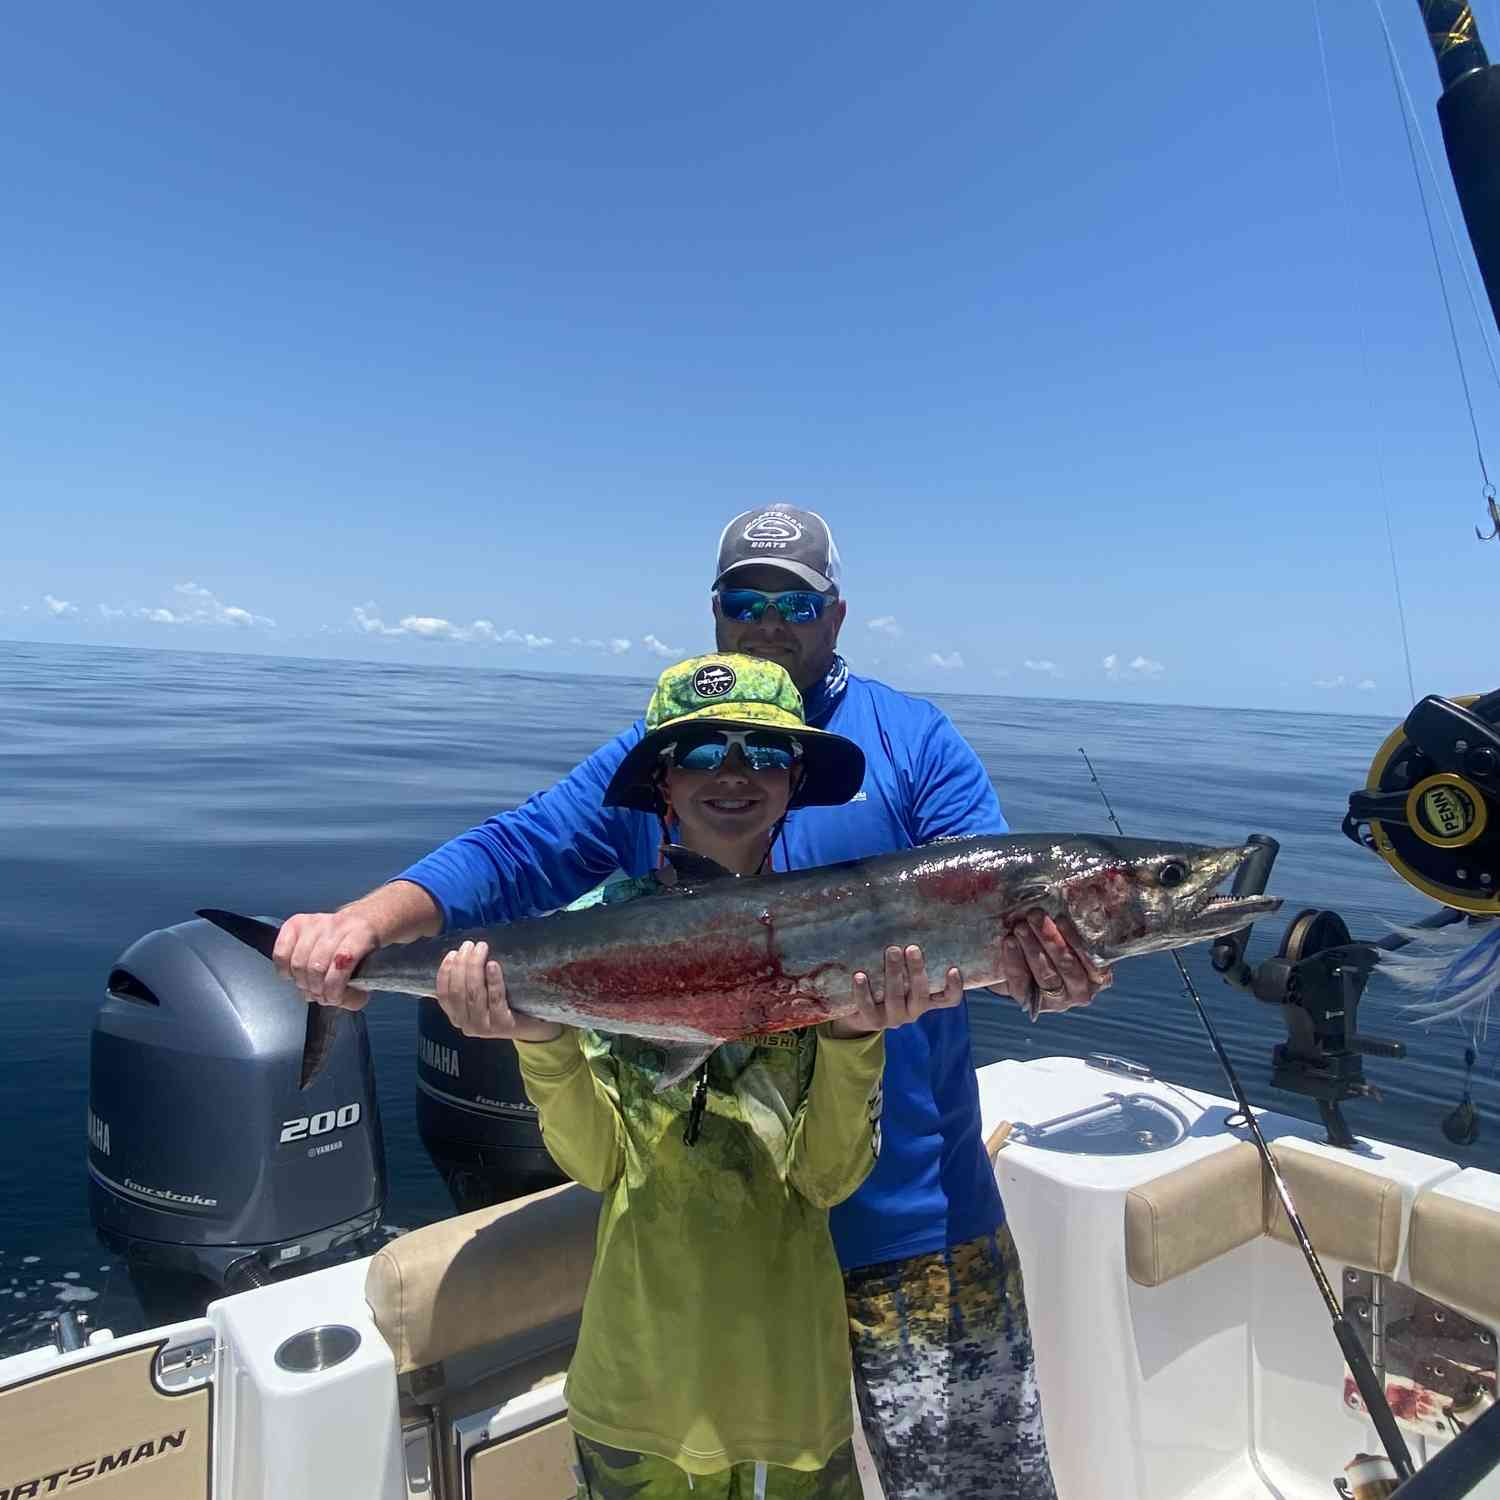 Title: His First King - On board their Sportsman Open 282TE Center Console - Location: Grays Reef off the Georgia coast. Participating in the Photo Contest #SportsmanJuly2020